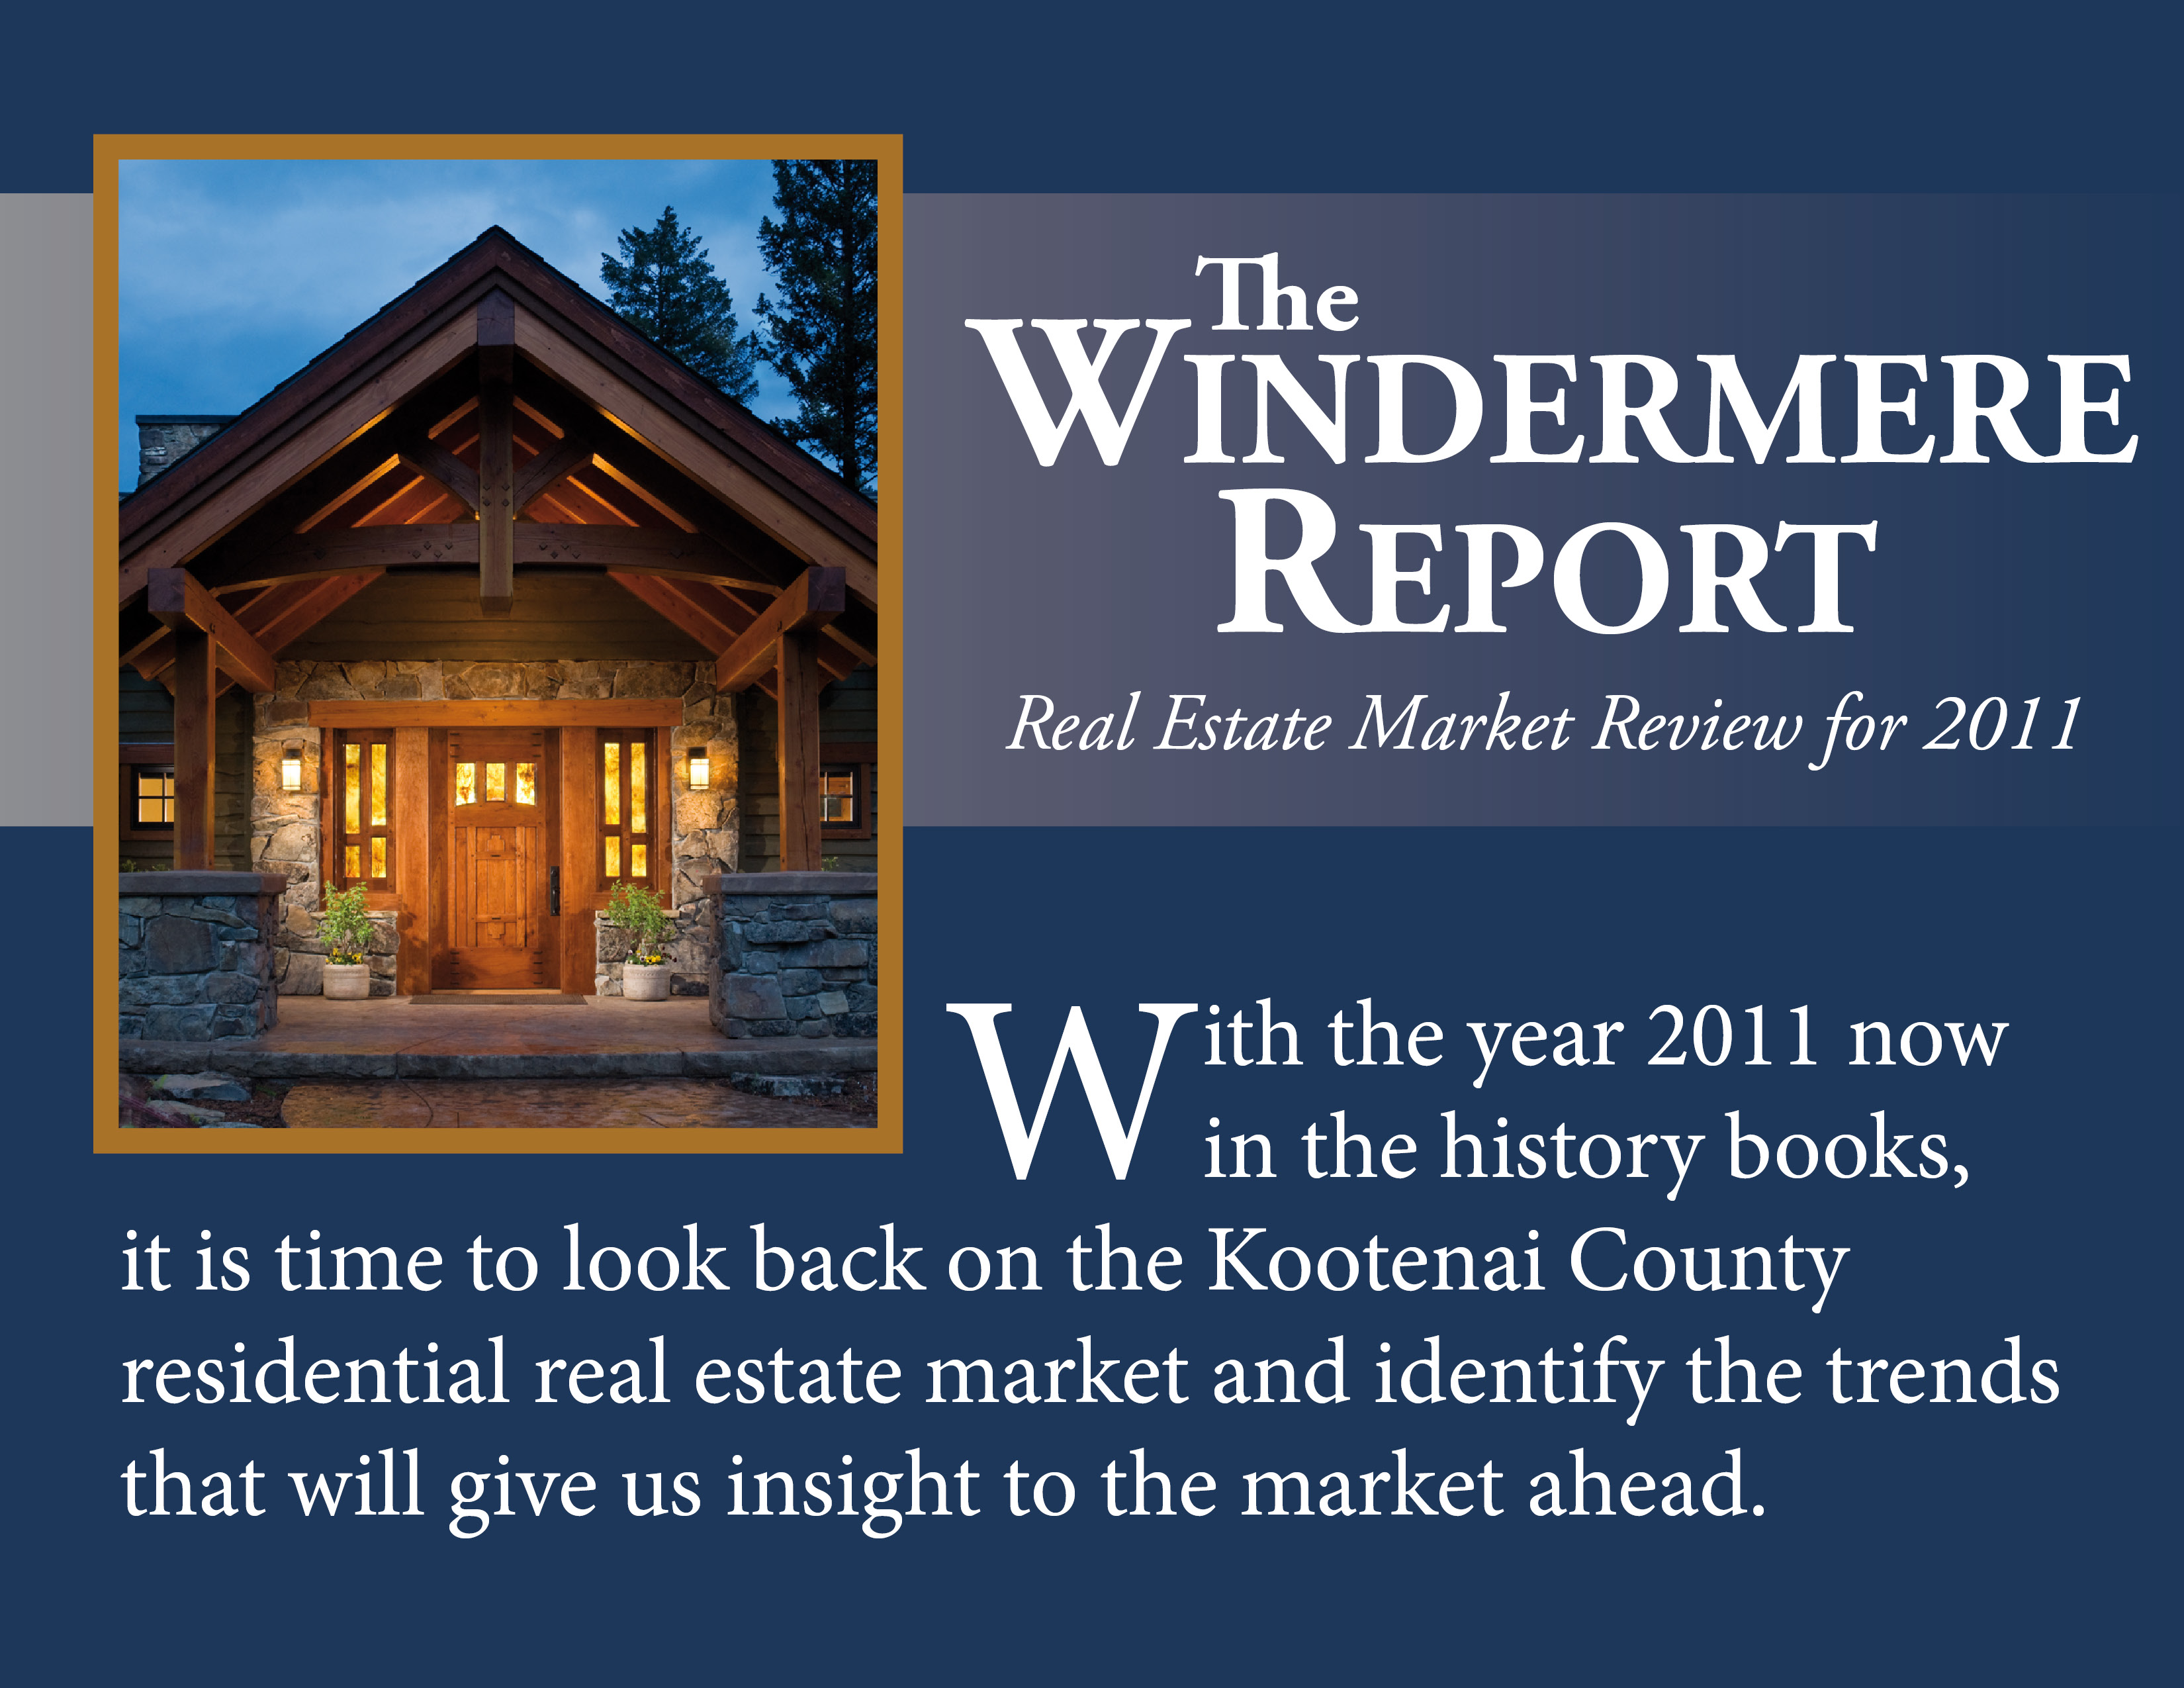 Register For The Windermere Market Forum Luncheon At The Garden Plaza Of Post Falls Randy